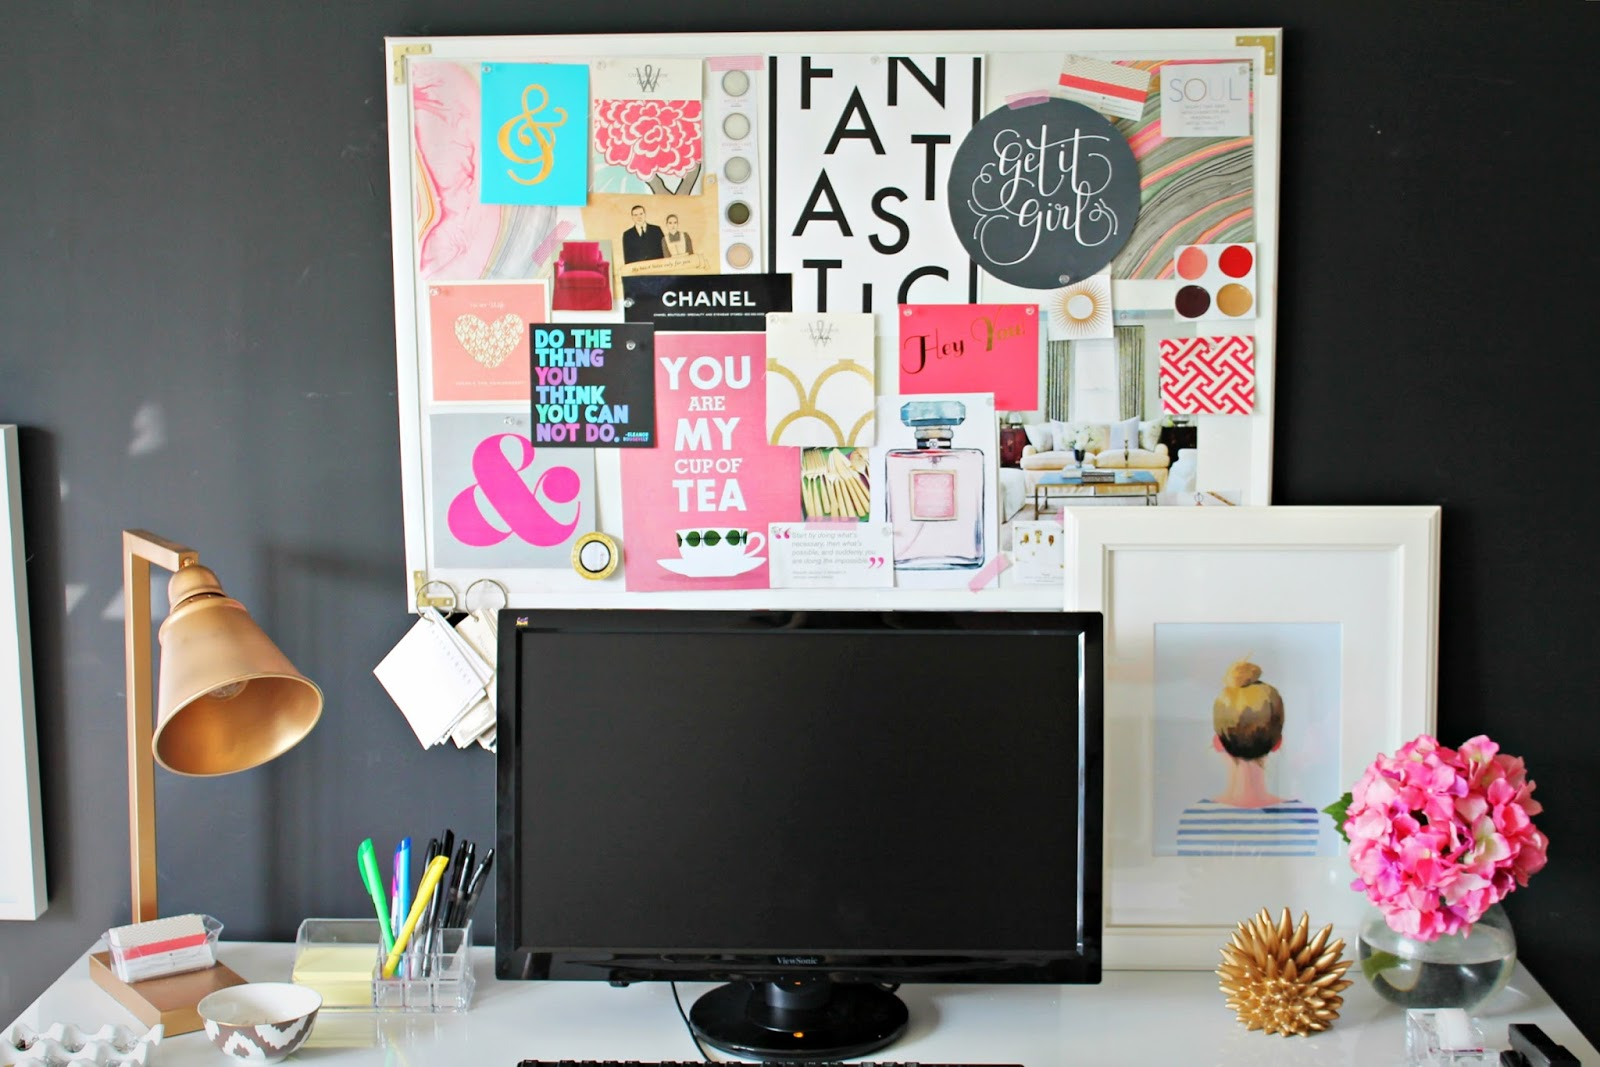 Wall Mural Prints Project Office Inspiration Board And Desk Update